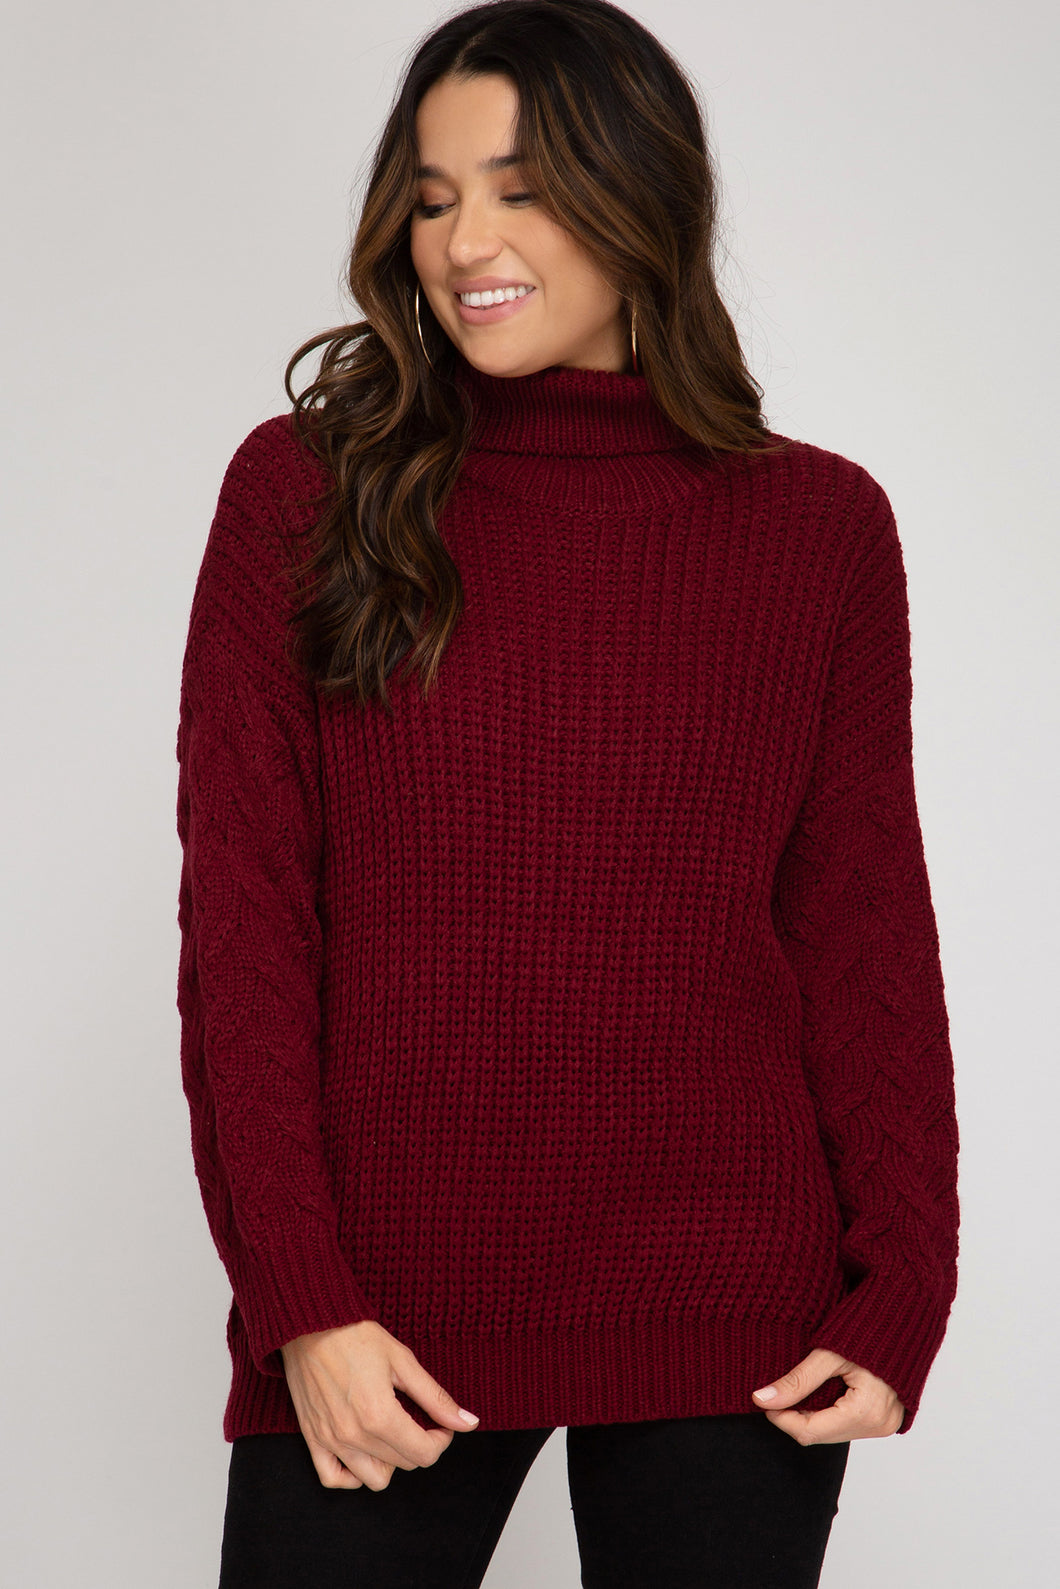 Frosty Cable Knit Turtle Neck Sweater